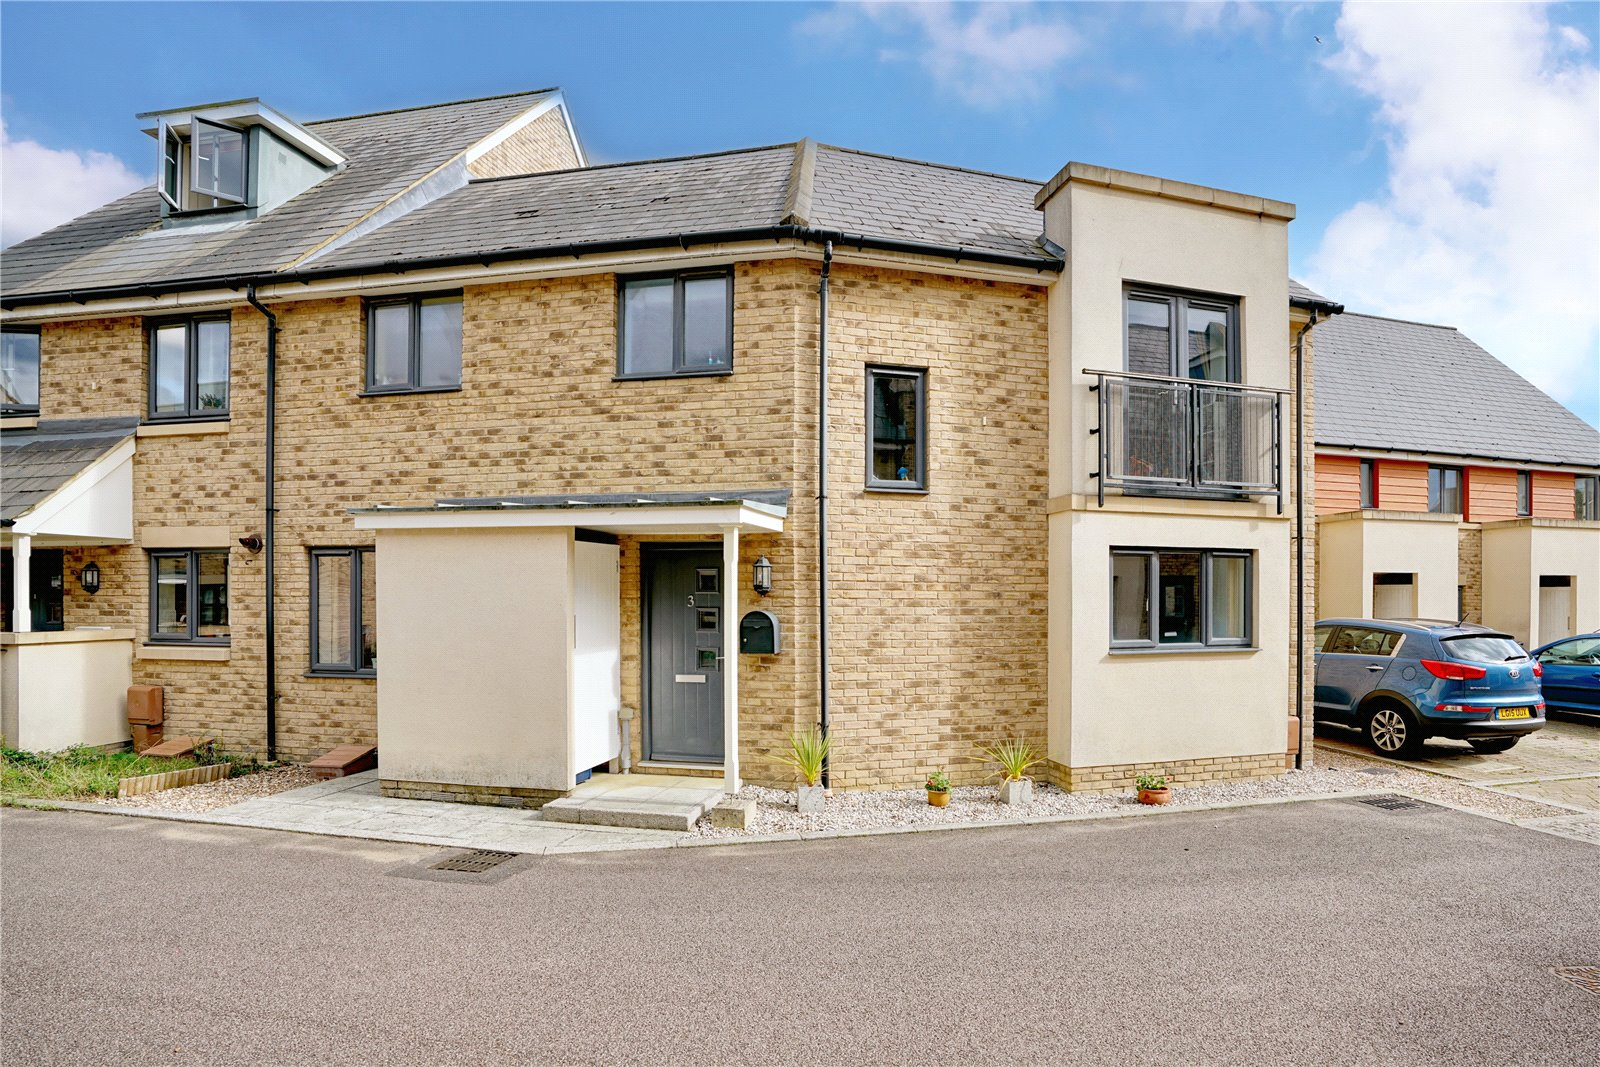 3 bed house for sale in St. Neots, PE19 6AT 0